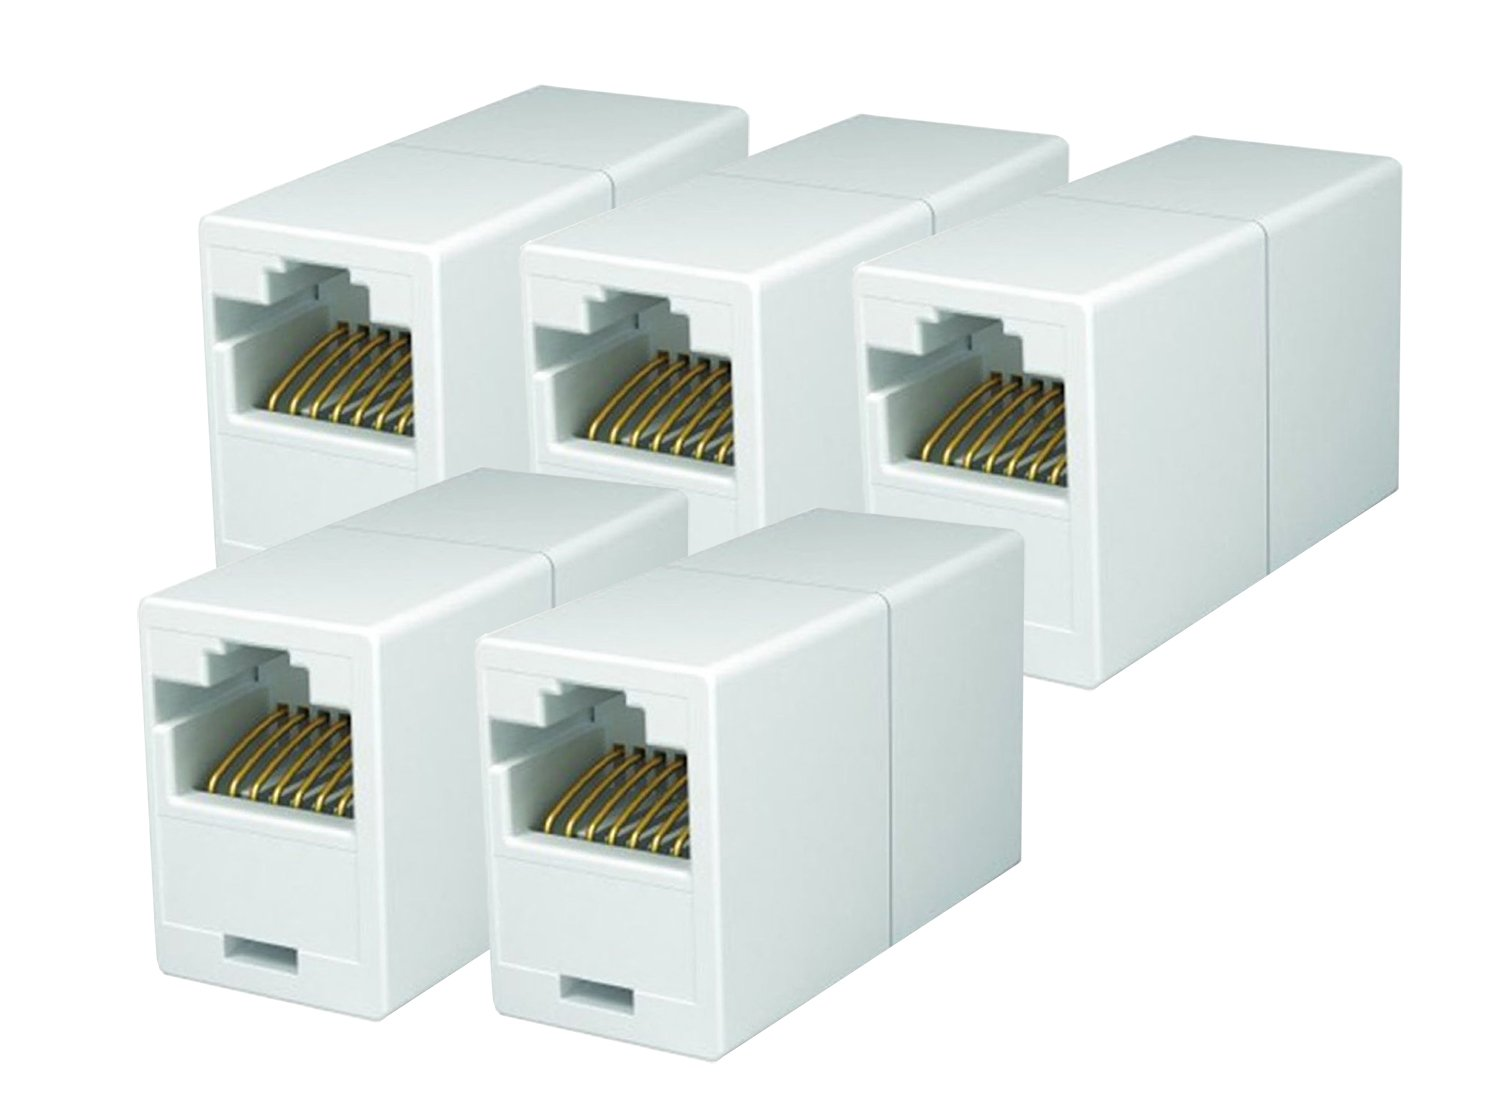 Imbaprice Rj45 Coupler Pack Of 5 Cat5e Ethernet How To Make A Category Cat 5e Patch Cable Extender Female Straight Modular Inline Computers Accessories